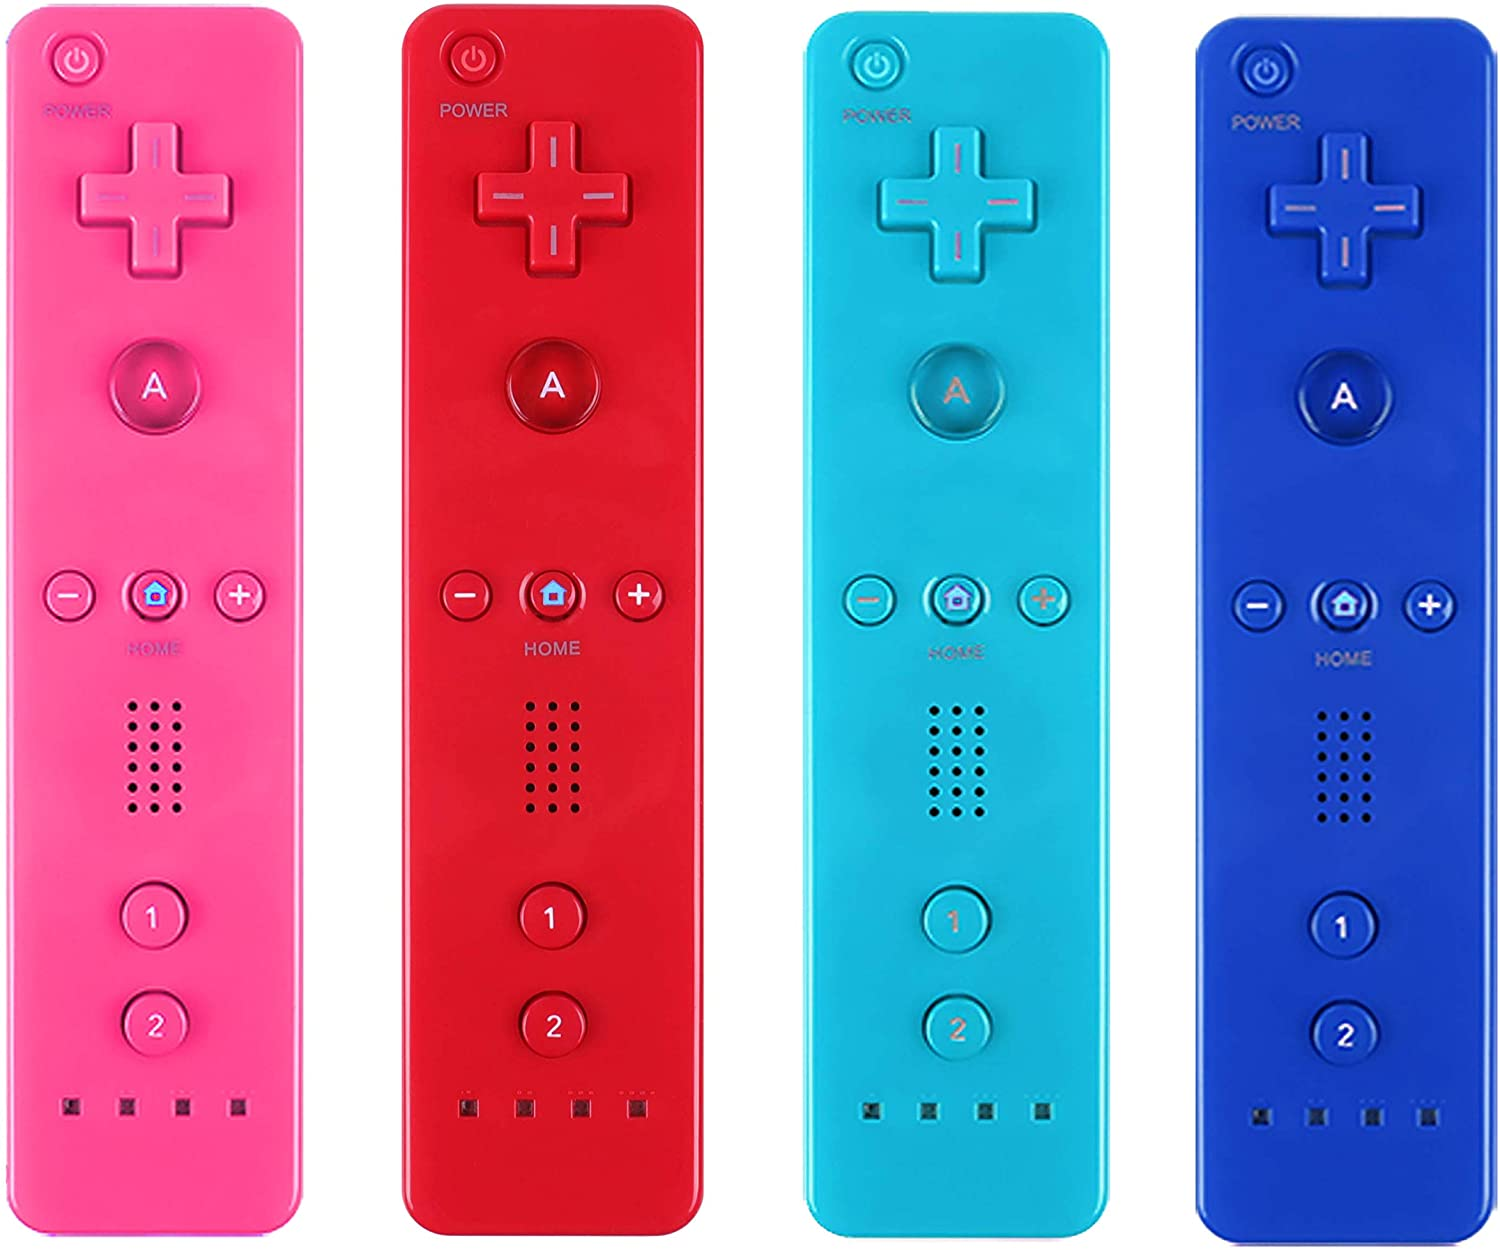 Yosikr Remote Wireless Controller Compatible for Wii/Wii u Console - with Silicone Case and Wrist Strap (Pink+Deep Blue+Blue+Red.)